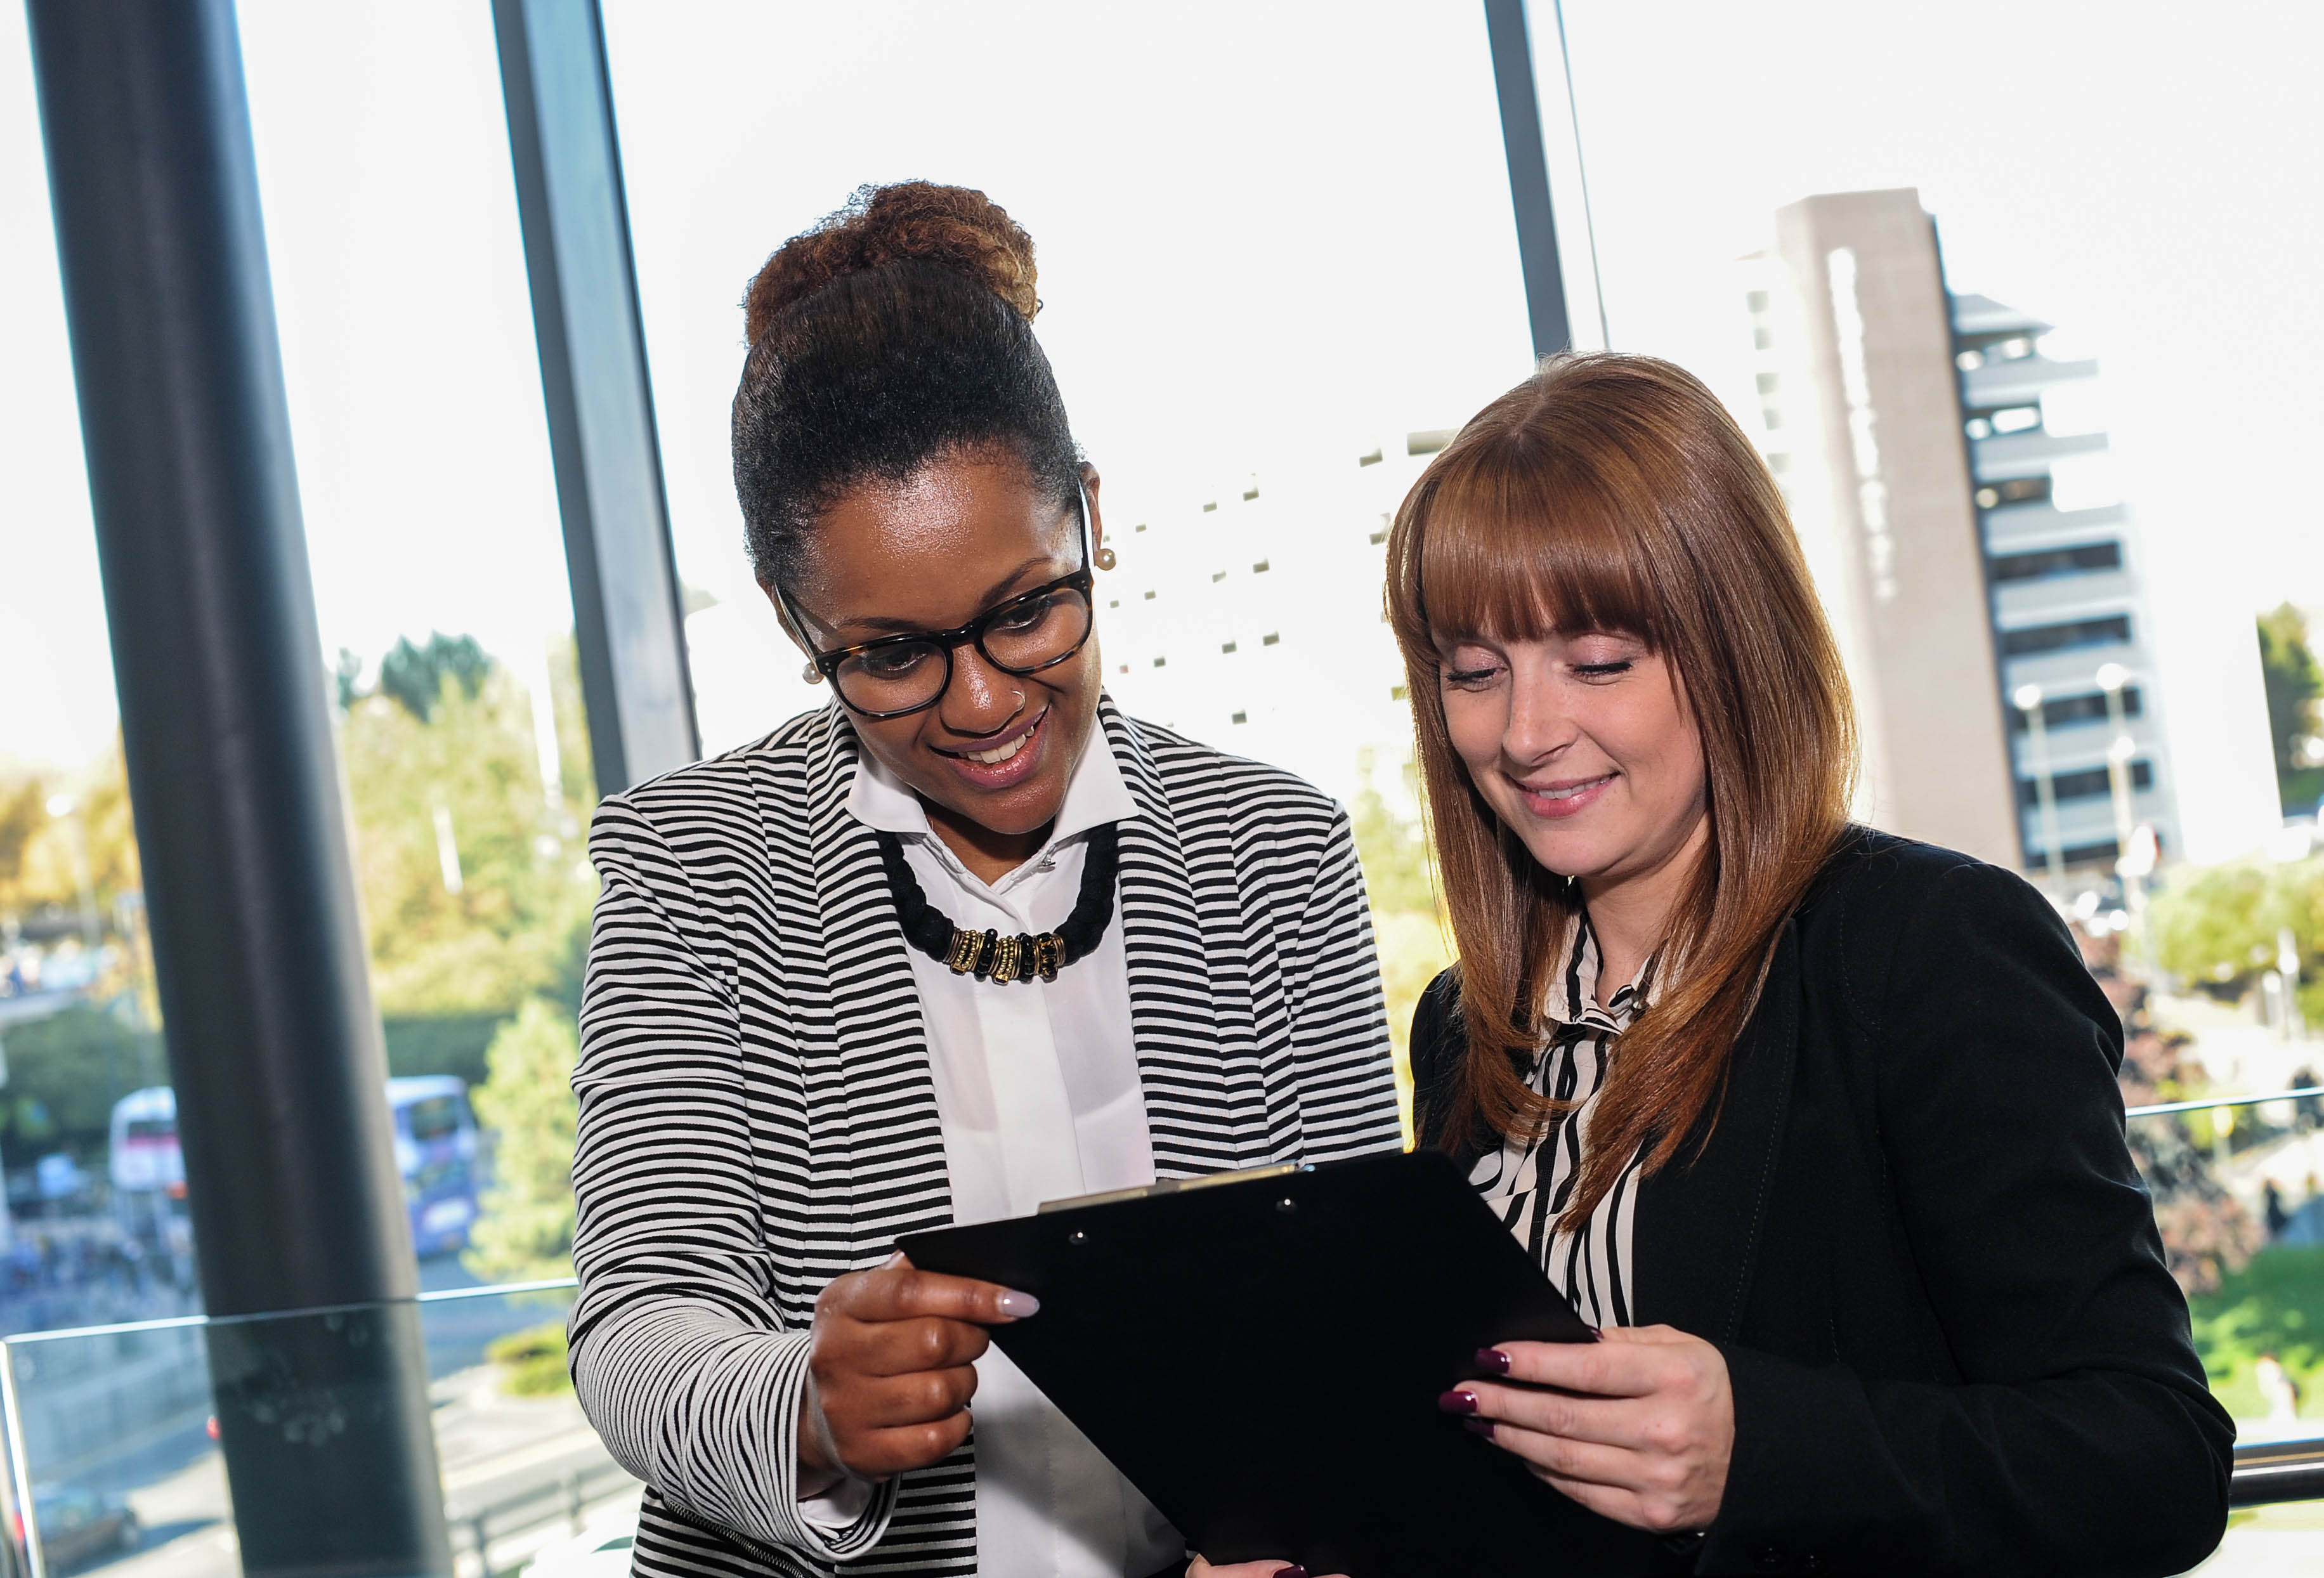 Leeds Beckett University recognised for Excellence in Customer Service